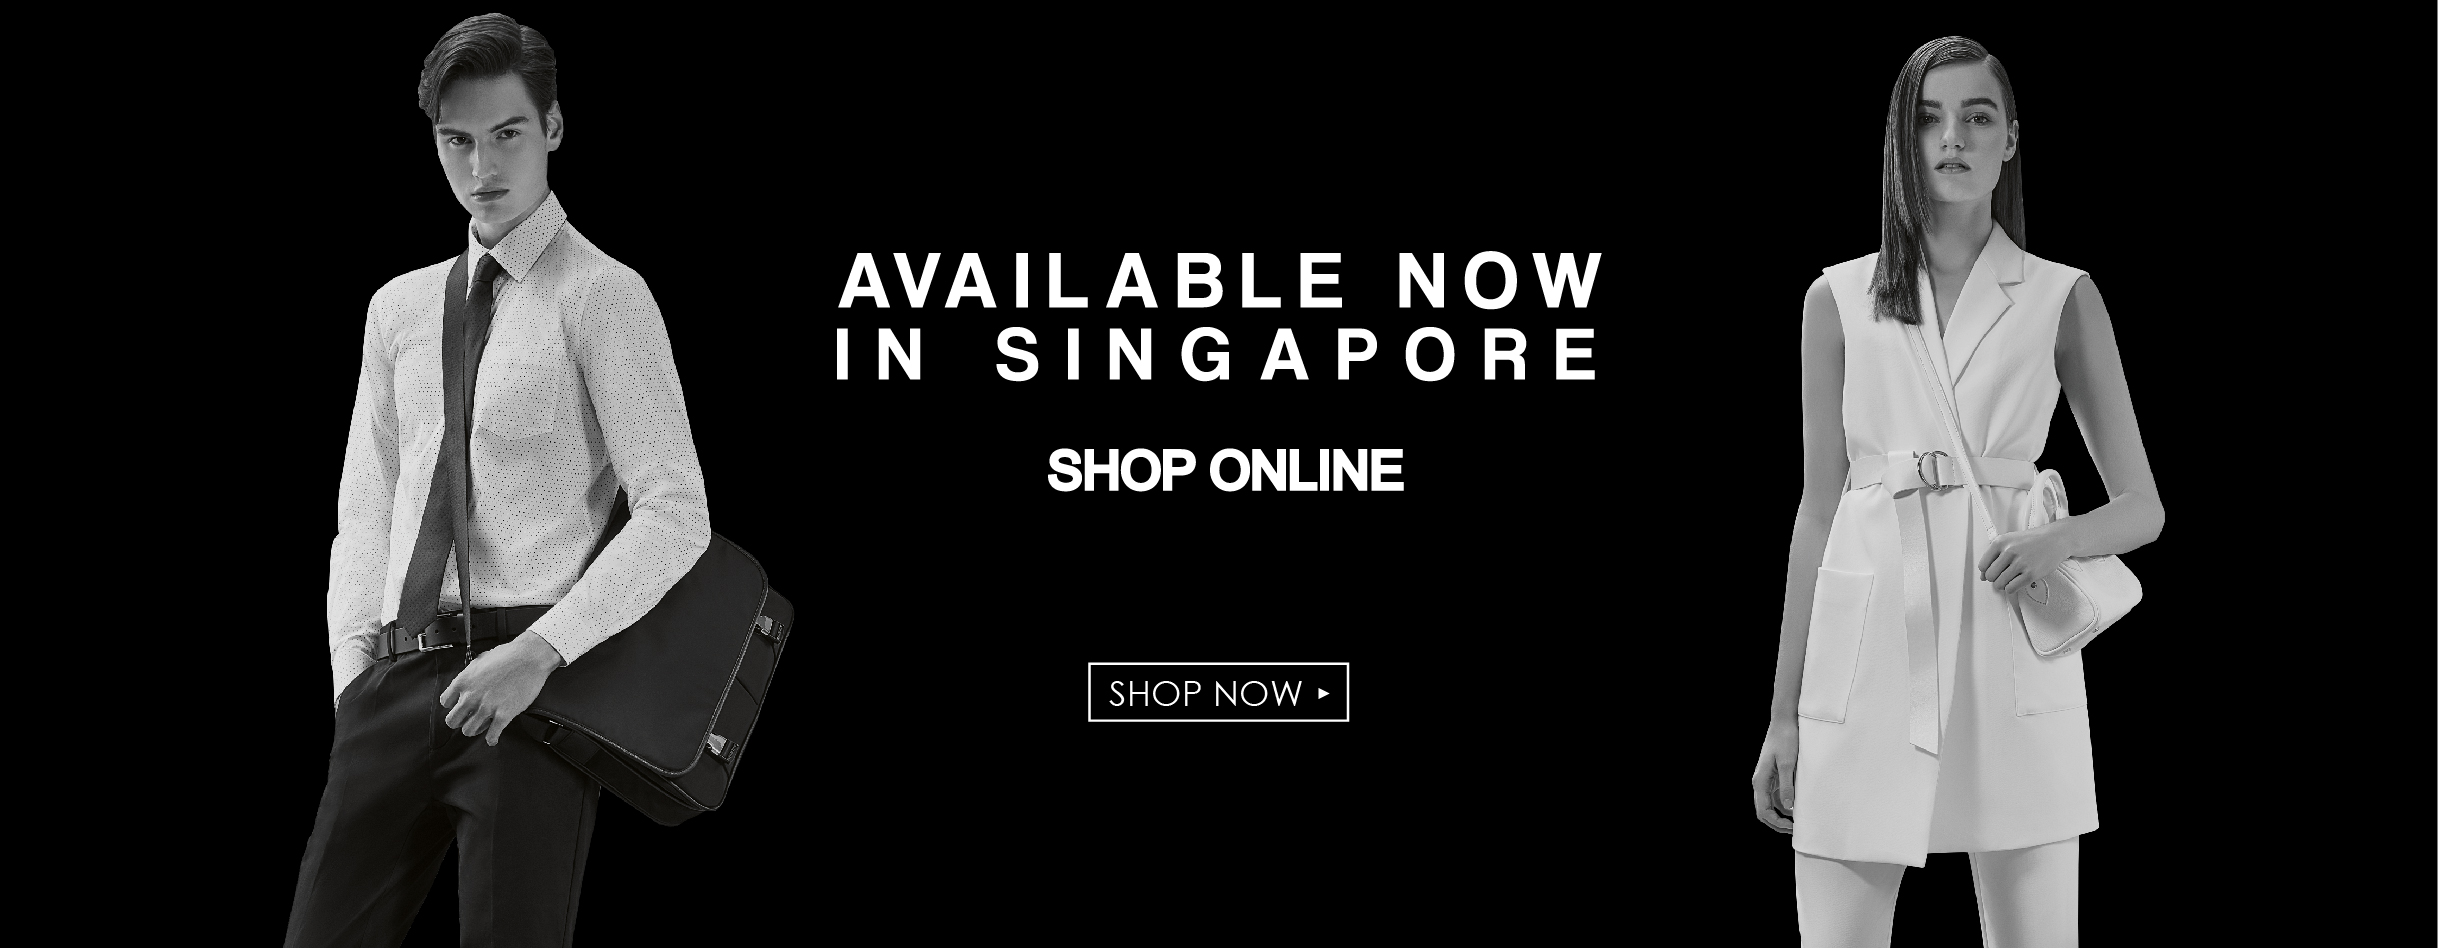 Avalialbe Now in Singapore